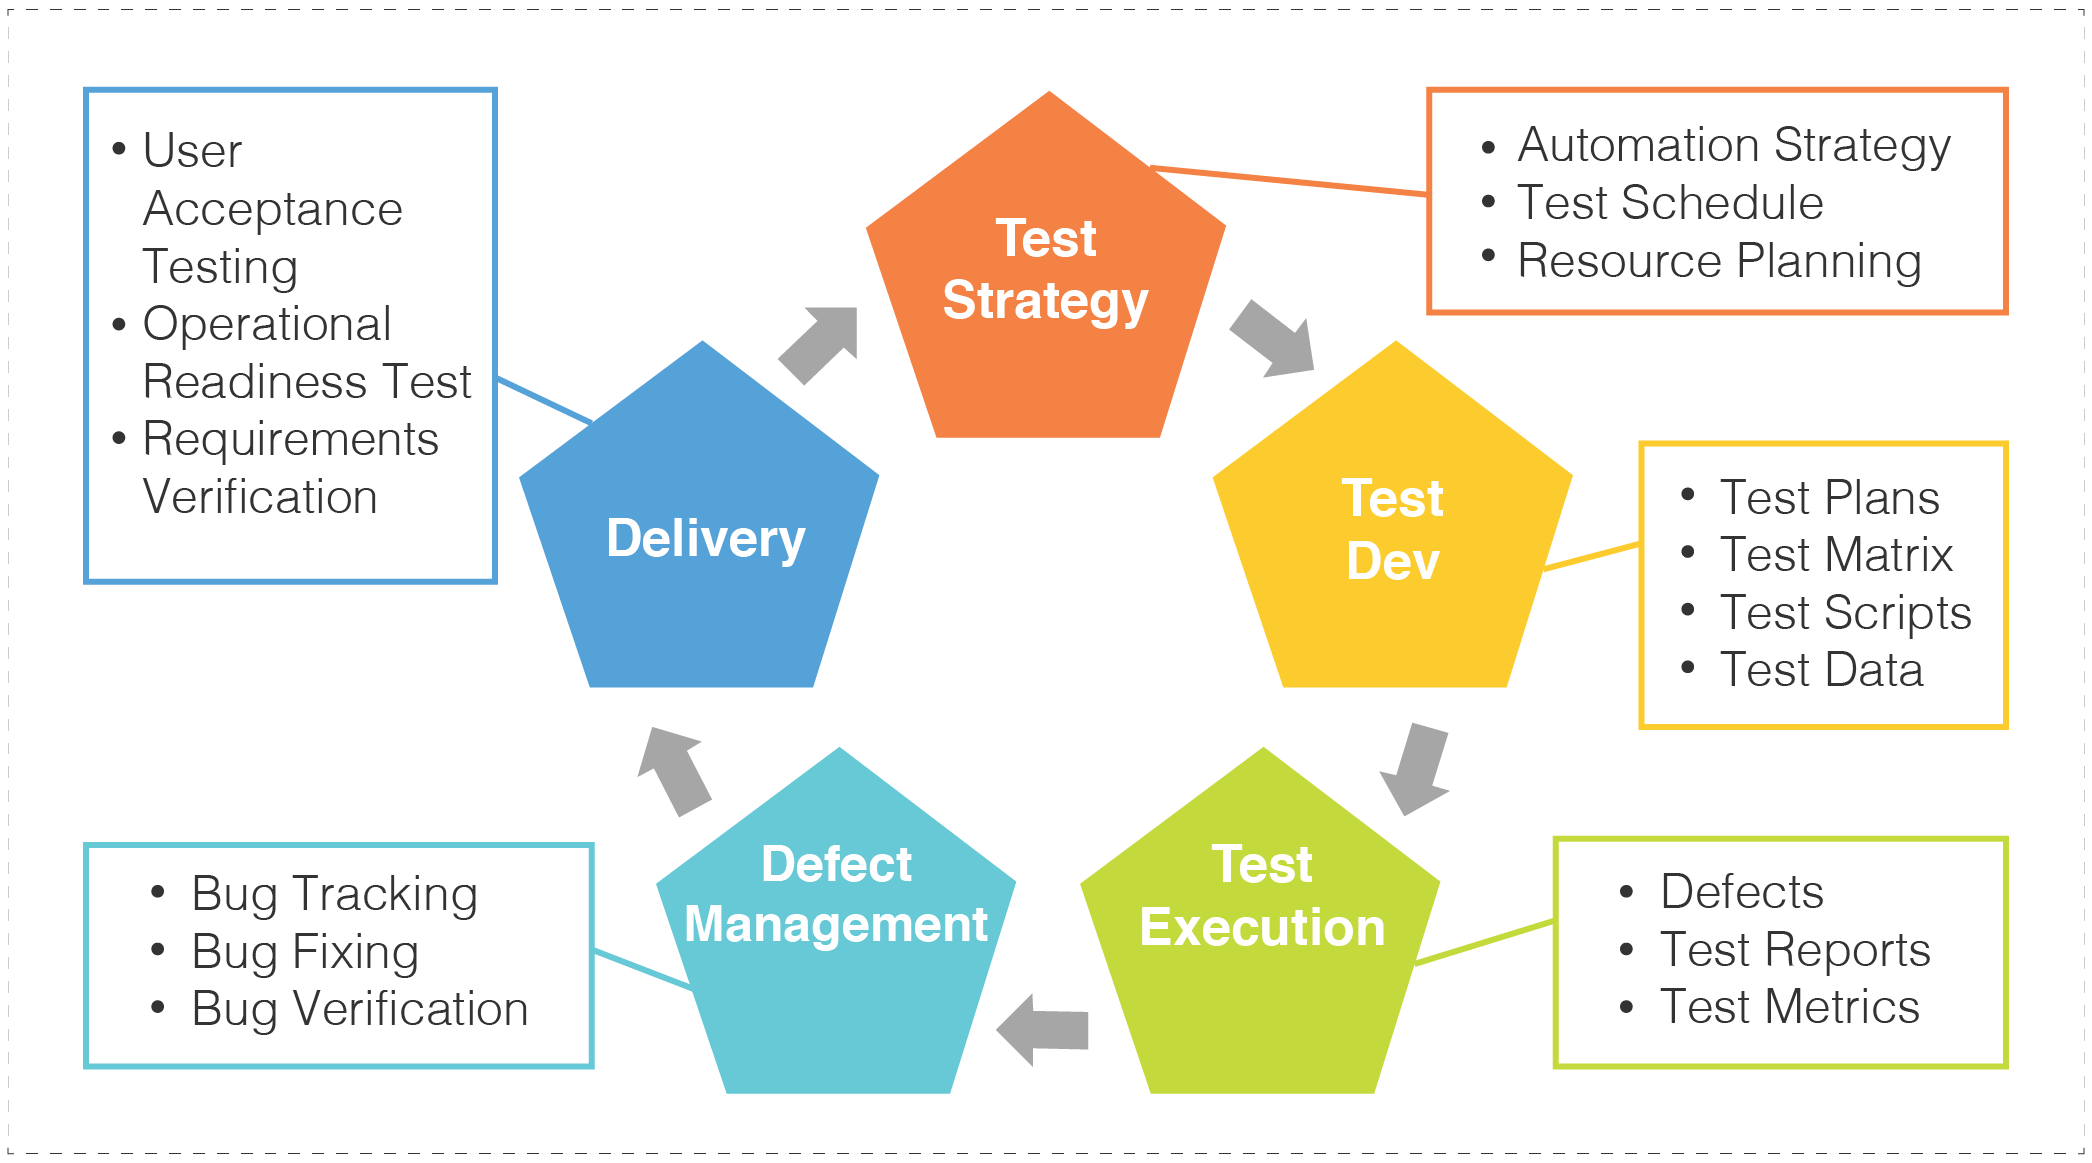 QA best practices methodologies cycle: test strategy, test dev, test execution, defect management, delivery